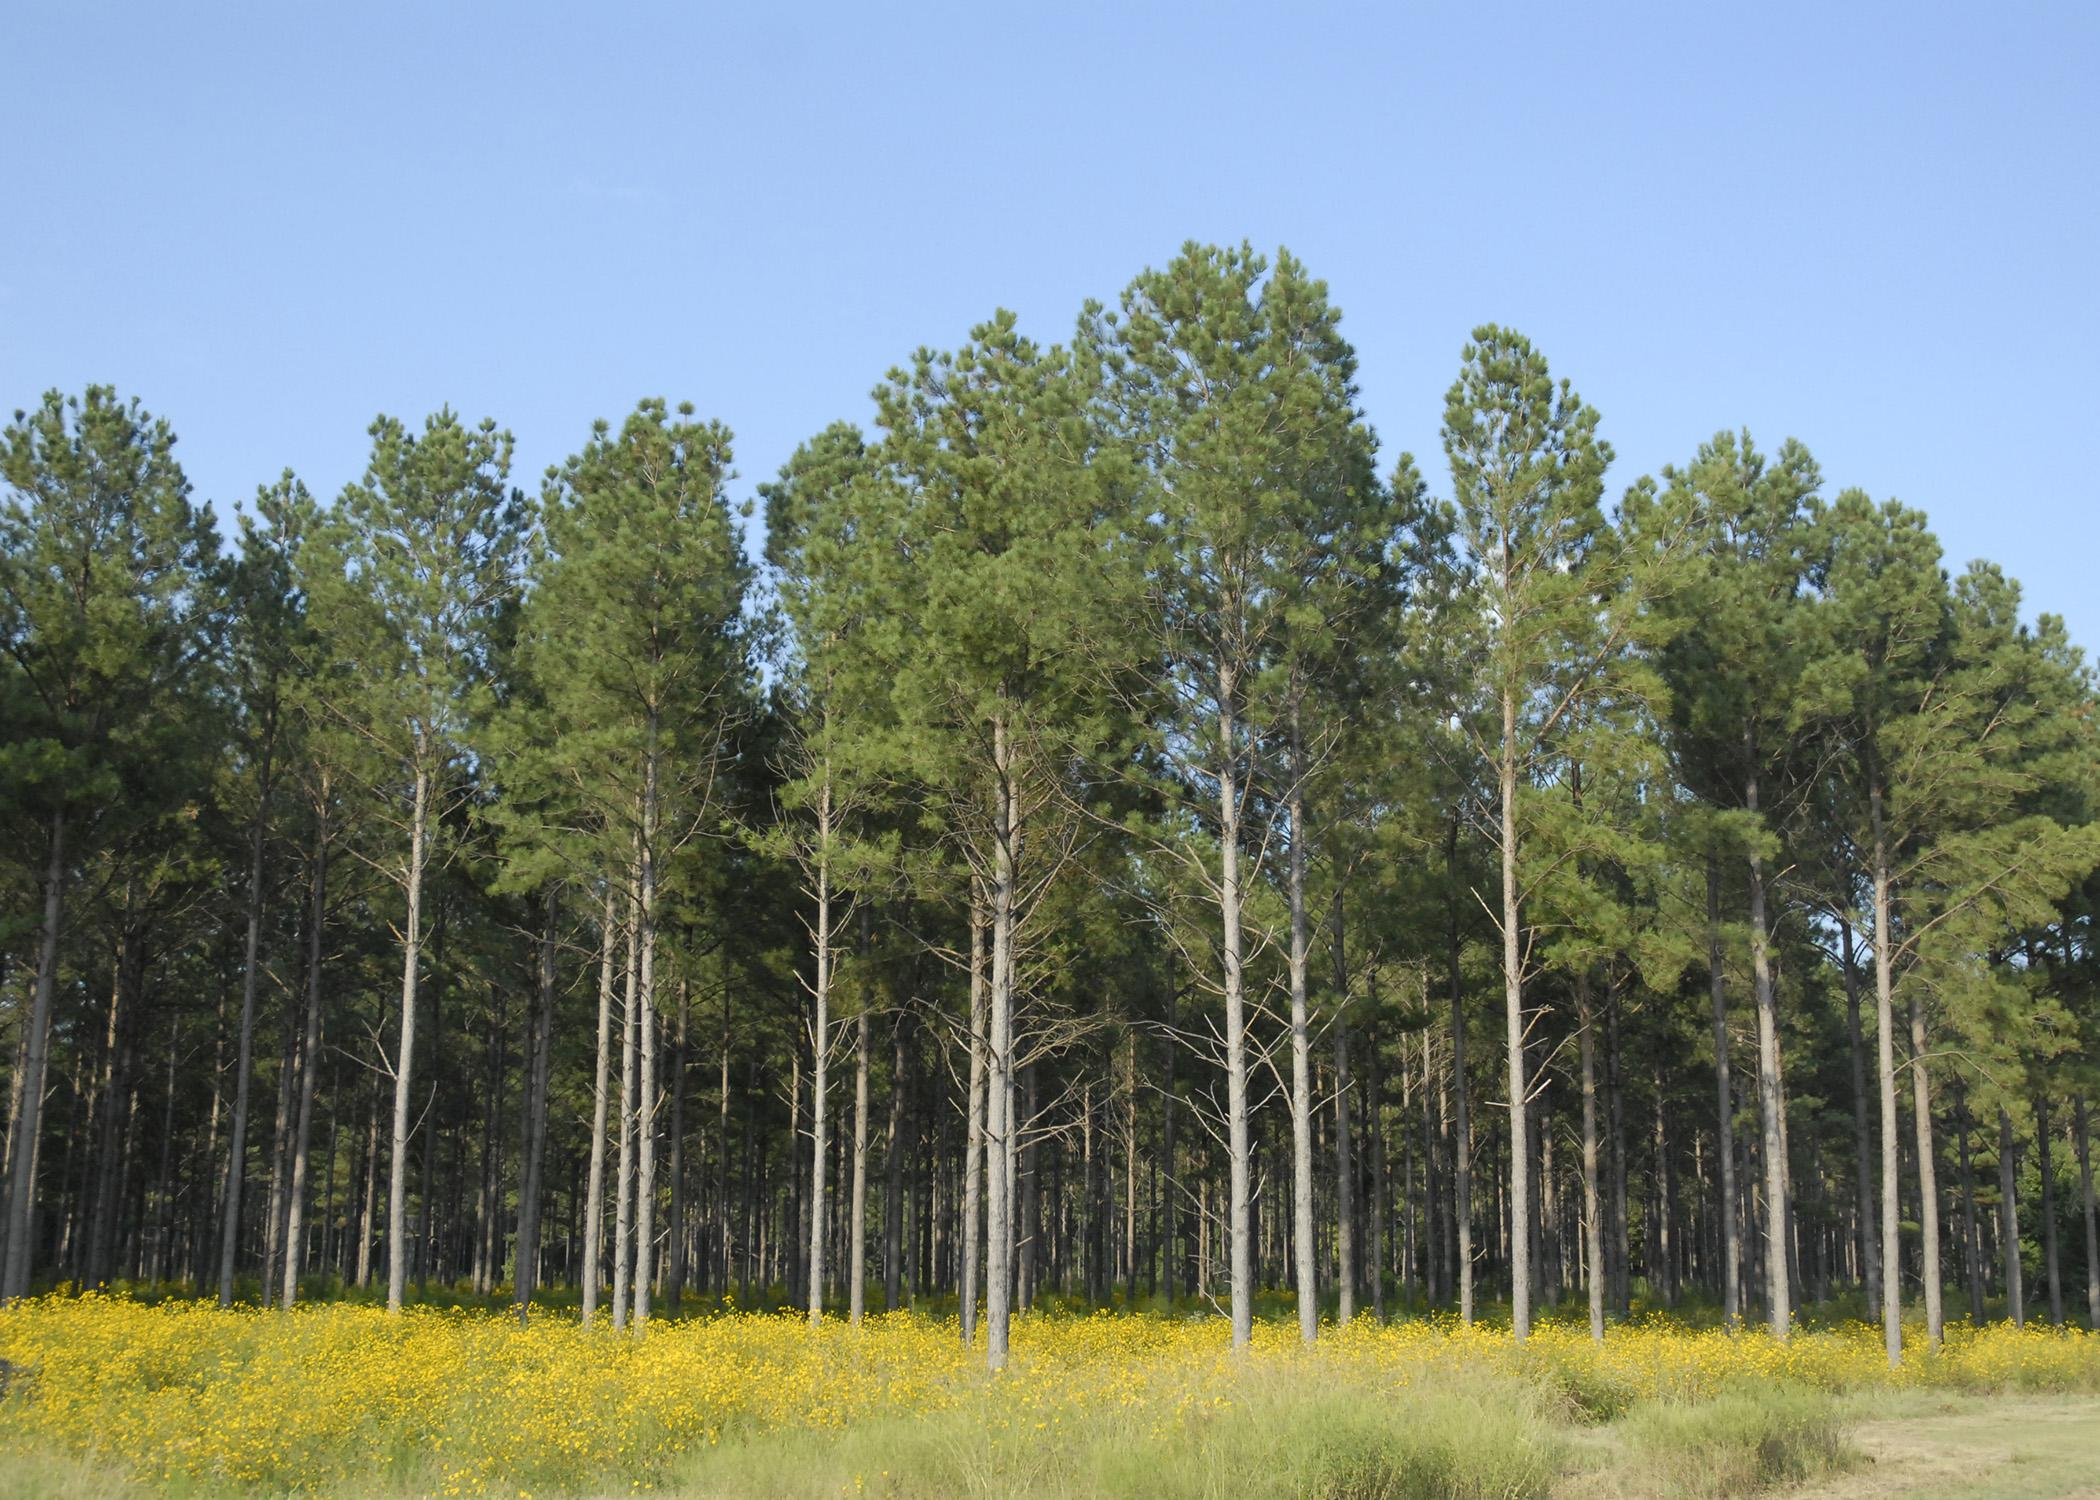 Forestry was Mississippi's second-largest agricultural commodity for 2014, with a preliminary year-end harvest value estimated at $1.28 billion, a 13.8 percent increase from 2013. (File photo by MSU Ag Communications/Linda Breazeale)